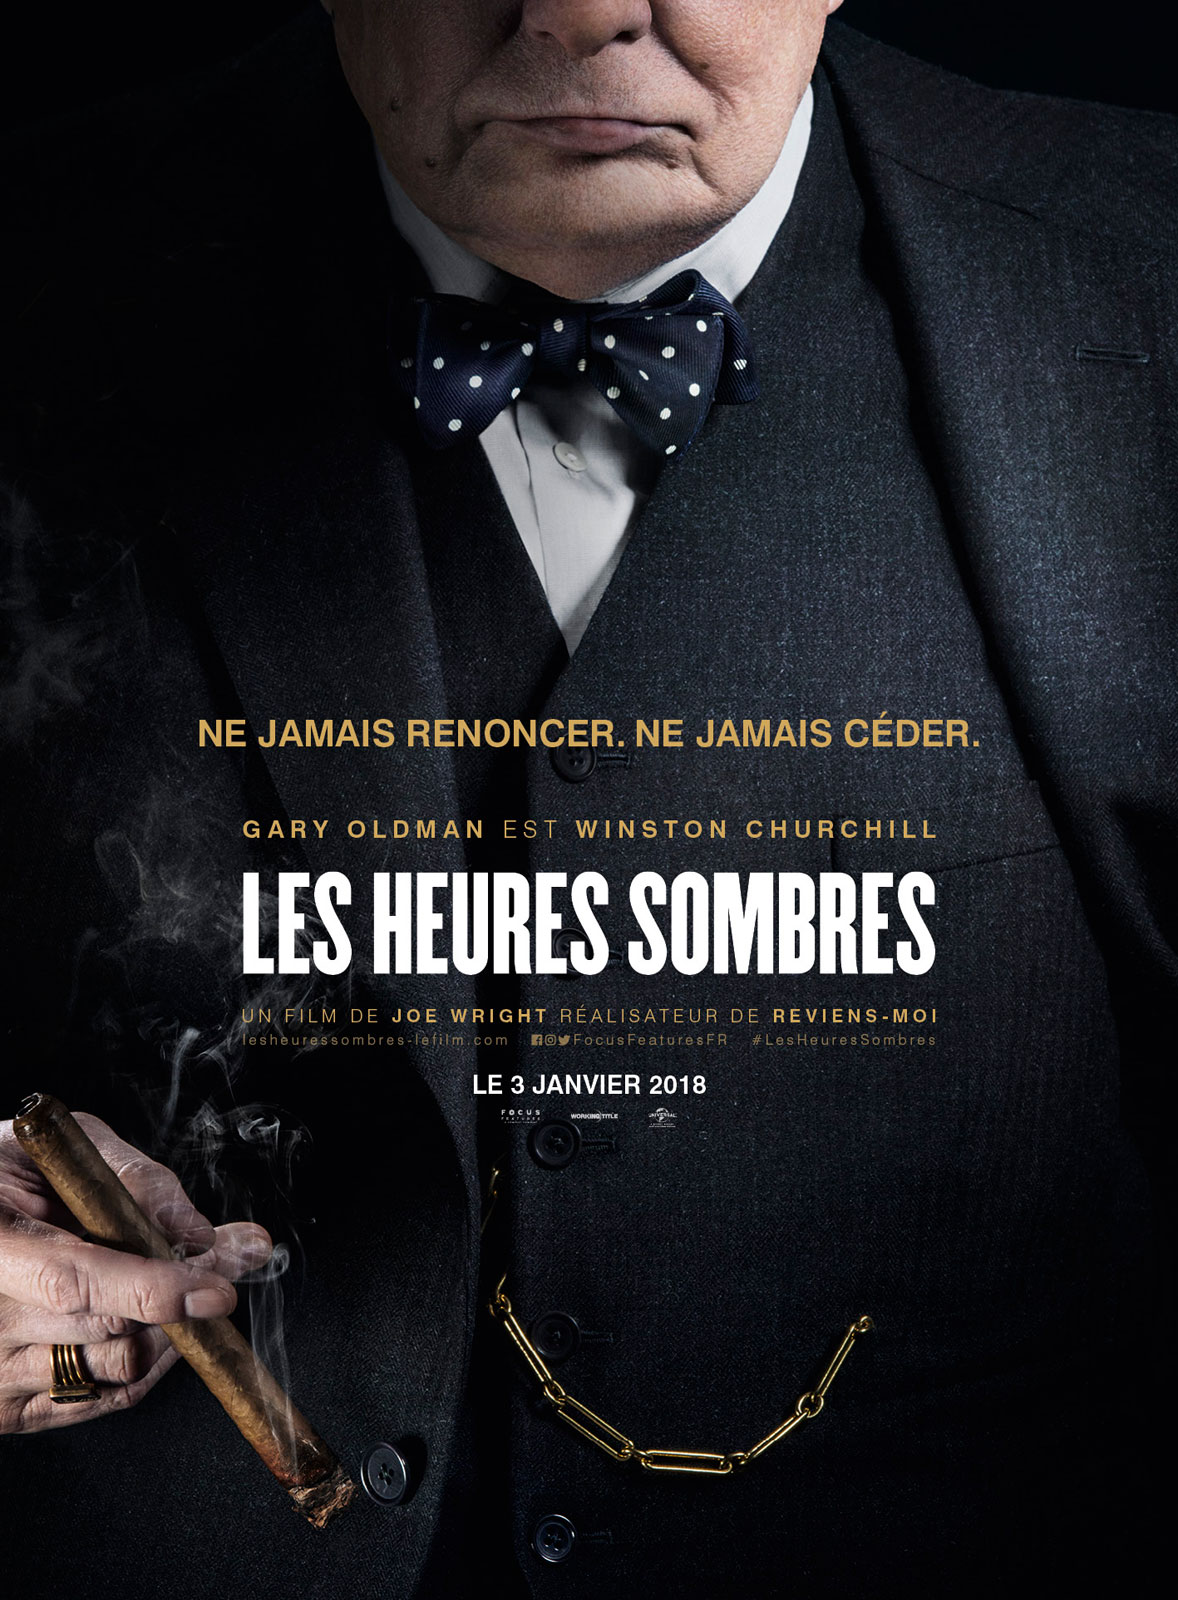 Les heures sombres FRENCH BluRay 720p 2018